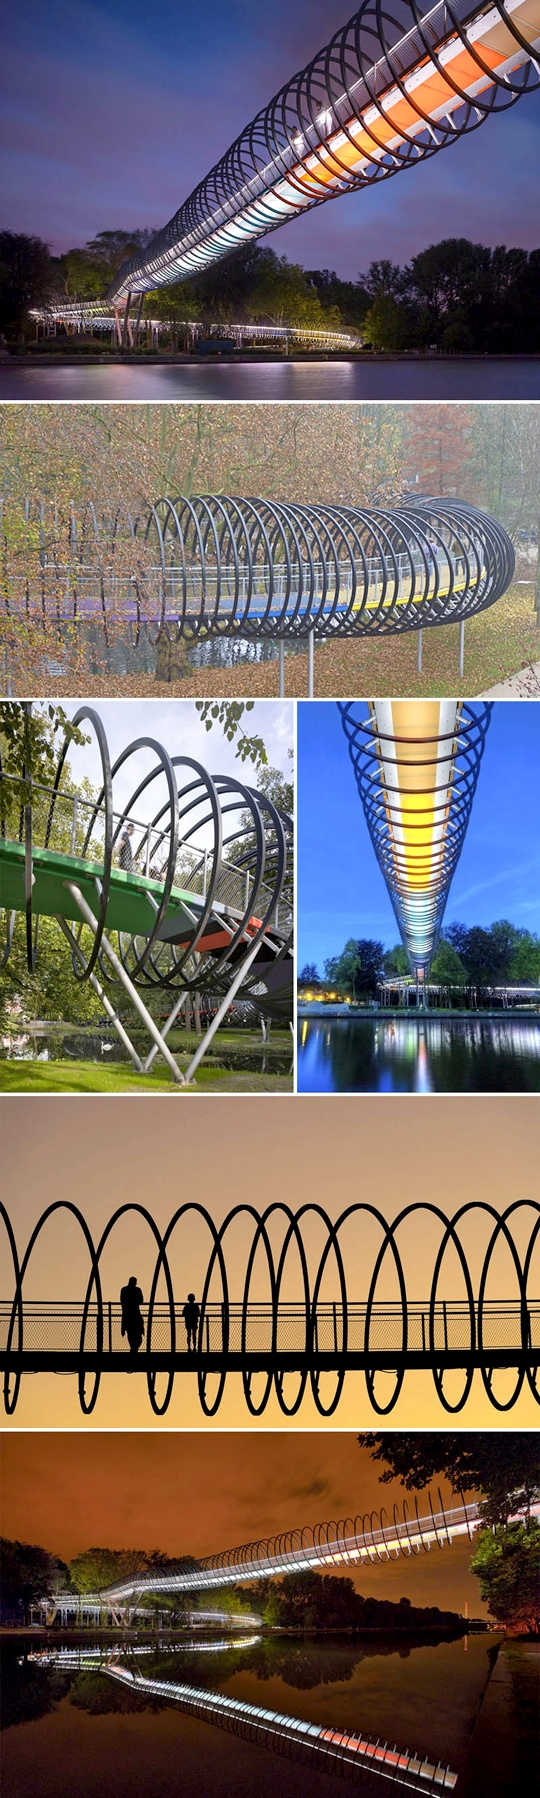 """CollabCubed has this post on """"The Slinky Springs Bridge"""" in Oberhausen, Germany. The bridge was designed by artist Tobias Rehberger and Schlaich Bergermann and Partner, and was inspired by — you guessed it — the iconic Slinky toy."""